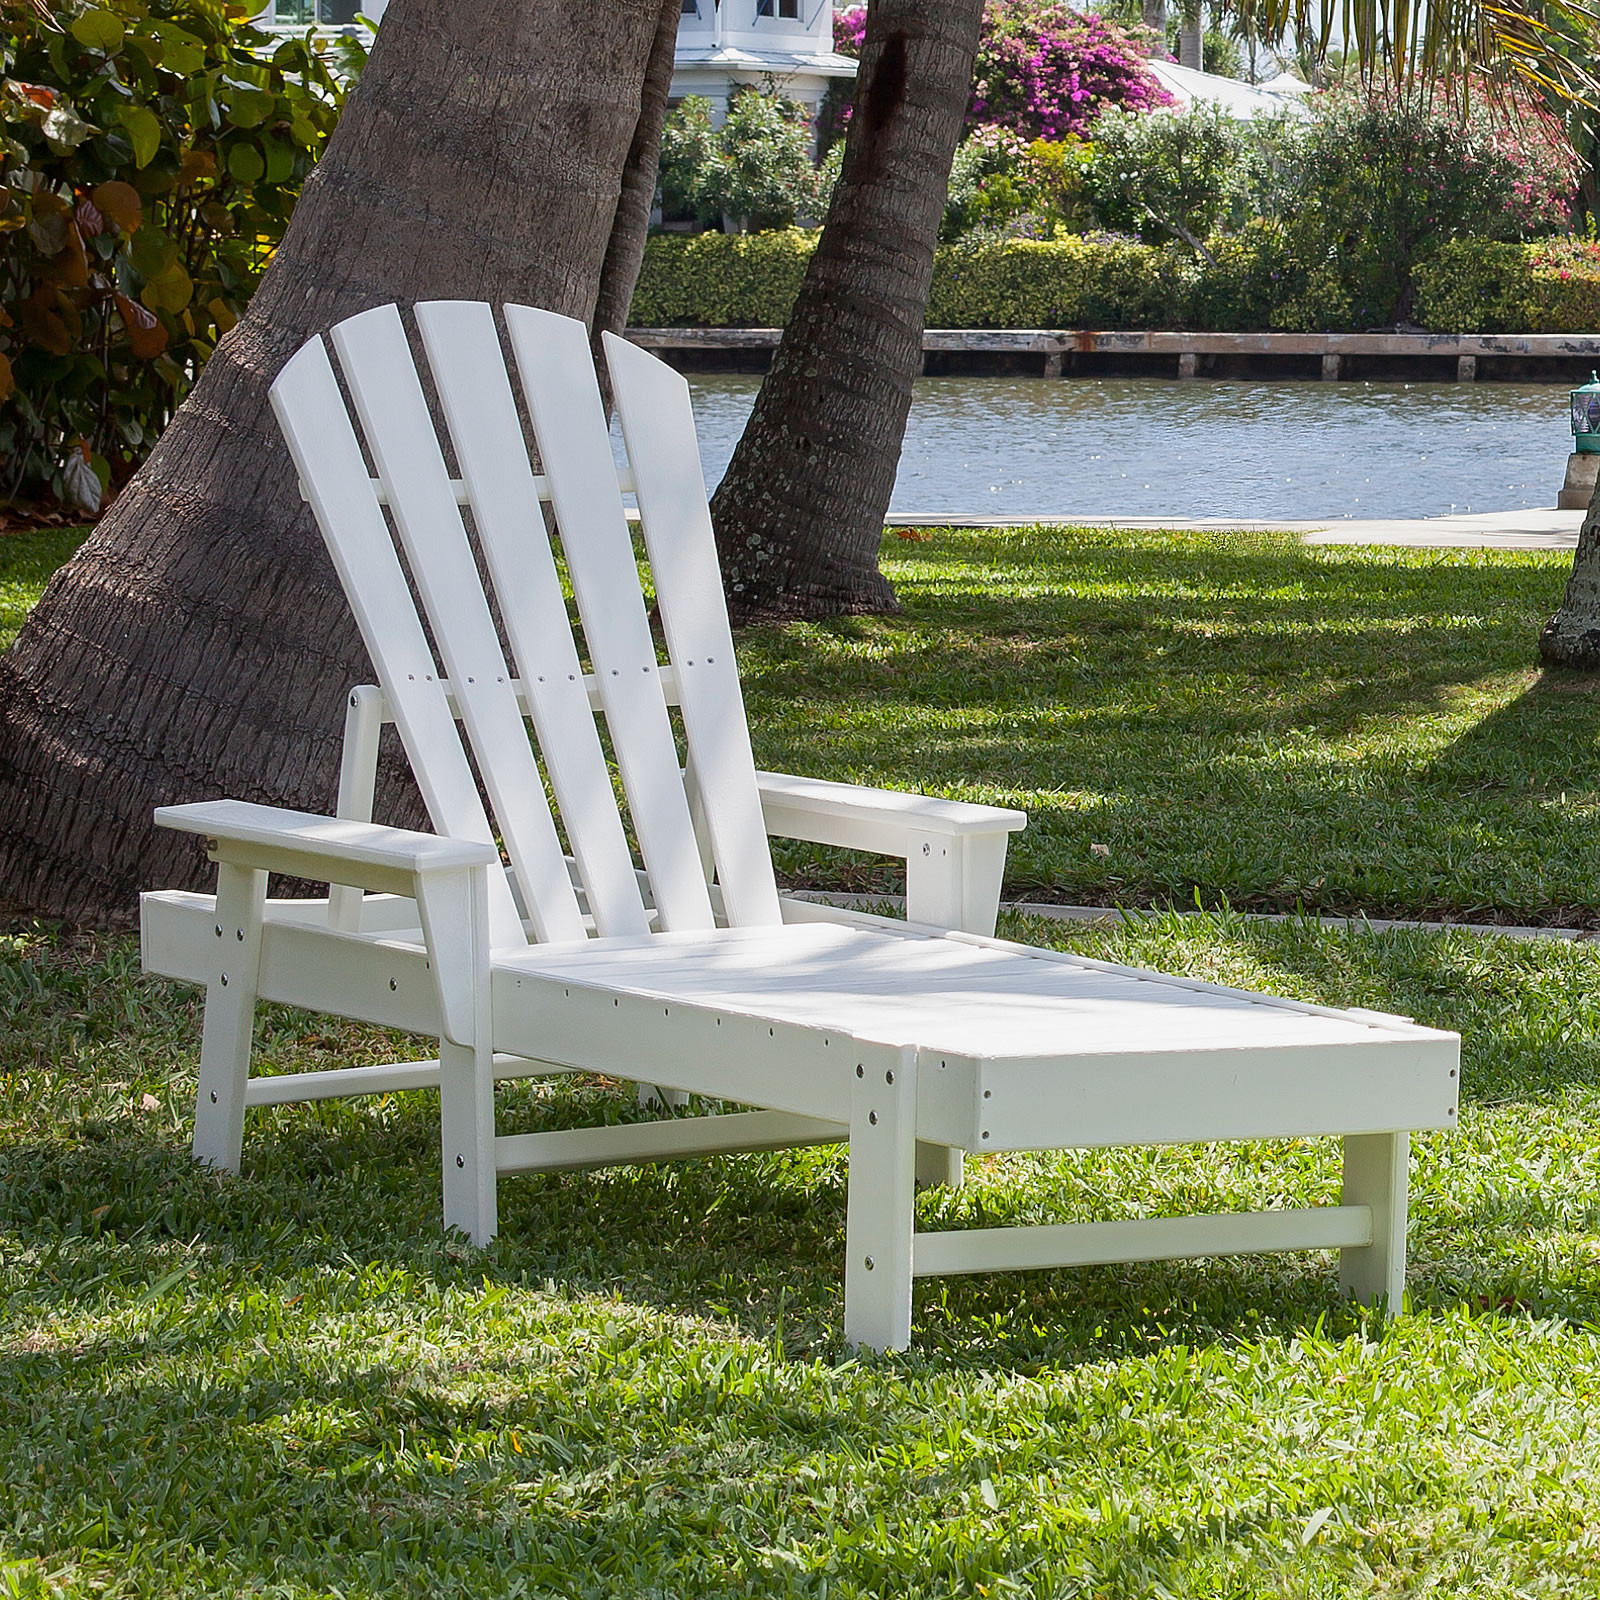 POLYWOOD South Beach Chaise Lounge South Beach POLYWOOD Outdoor Furniture Collections